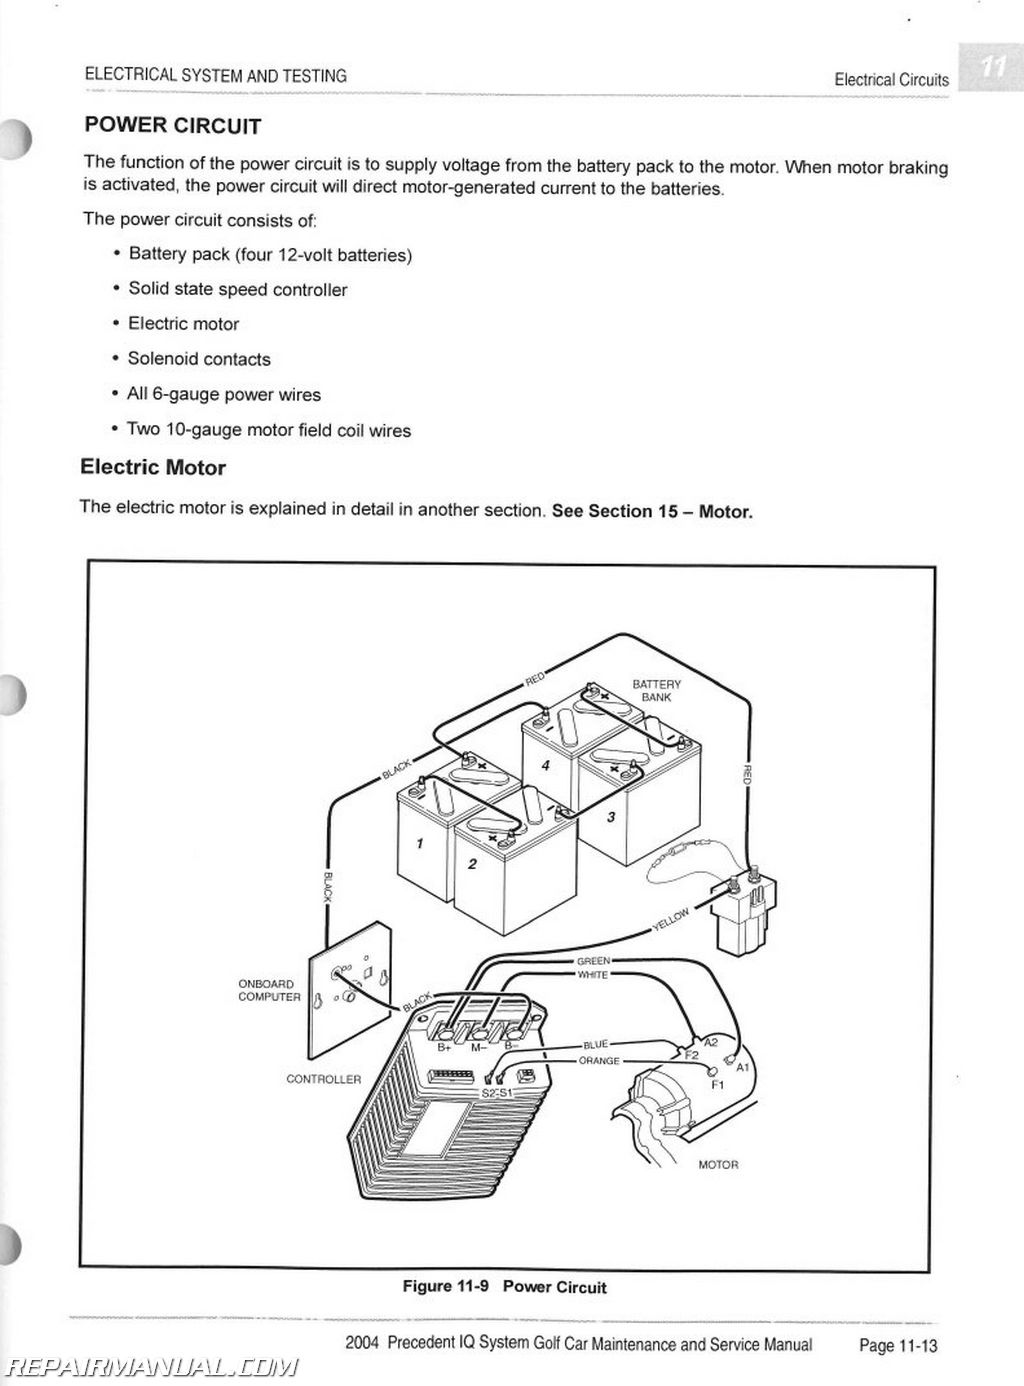 2004 club car precedent wiring diagram